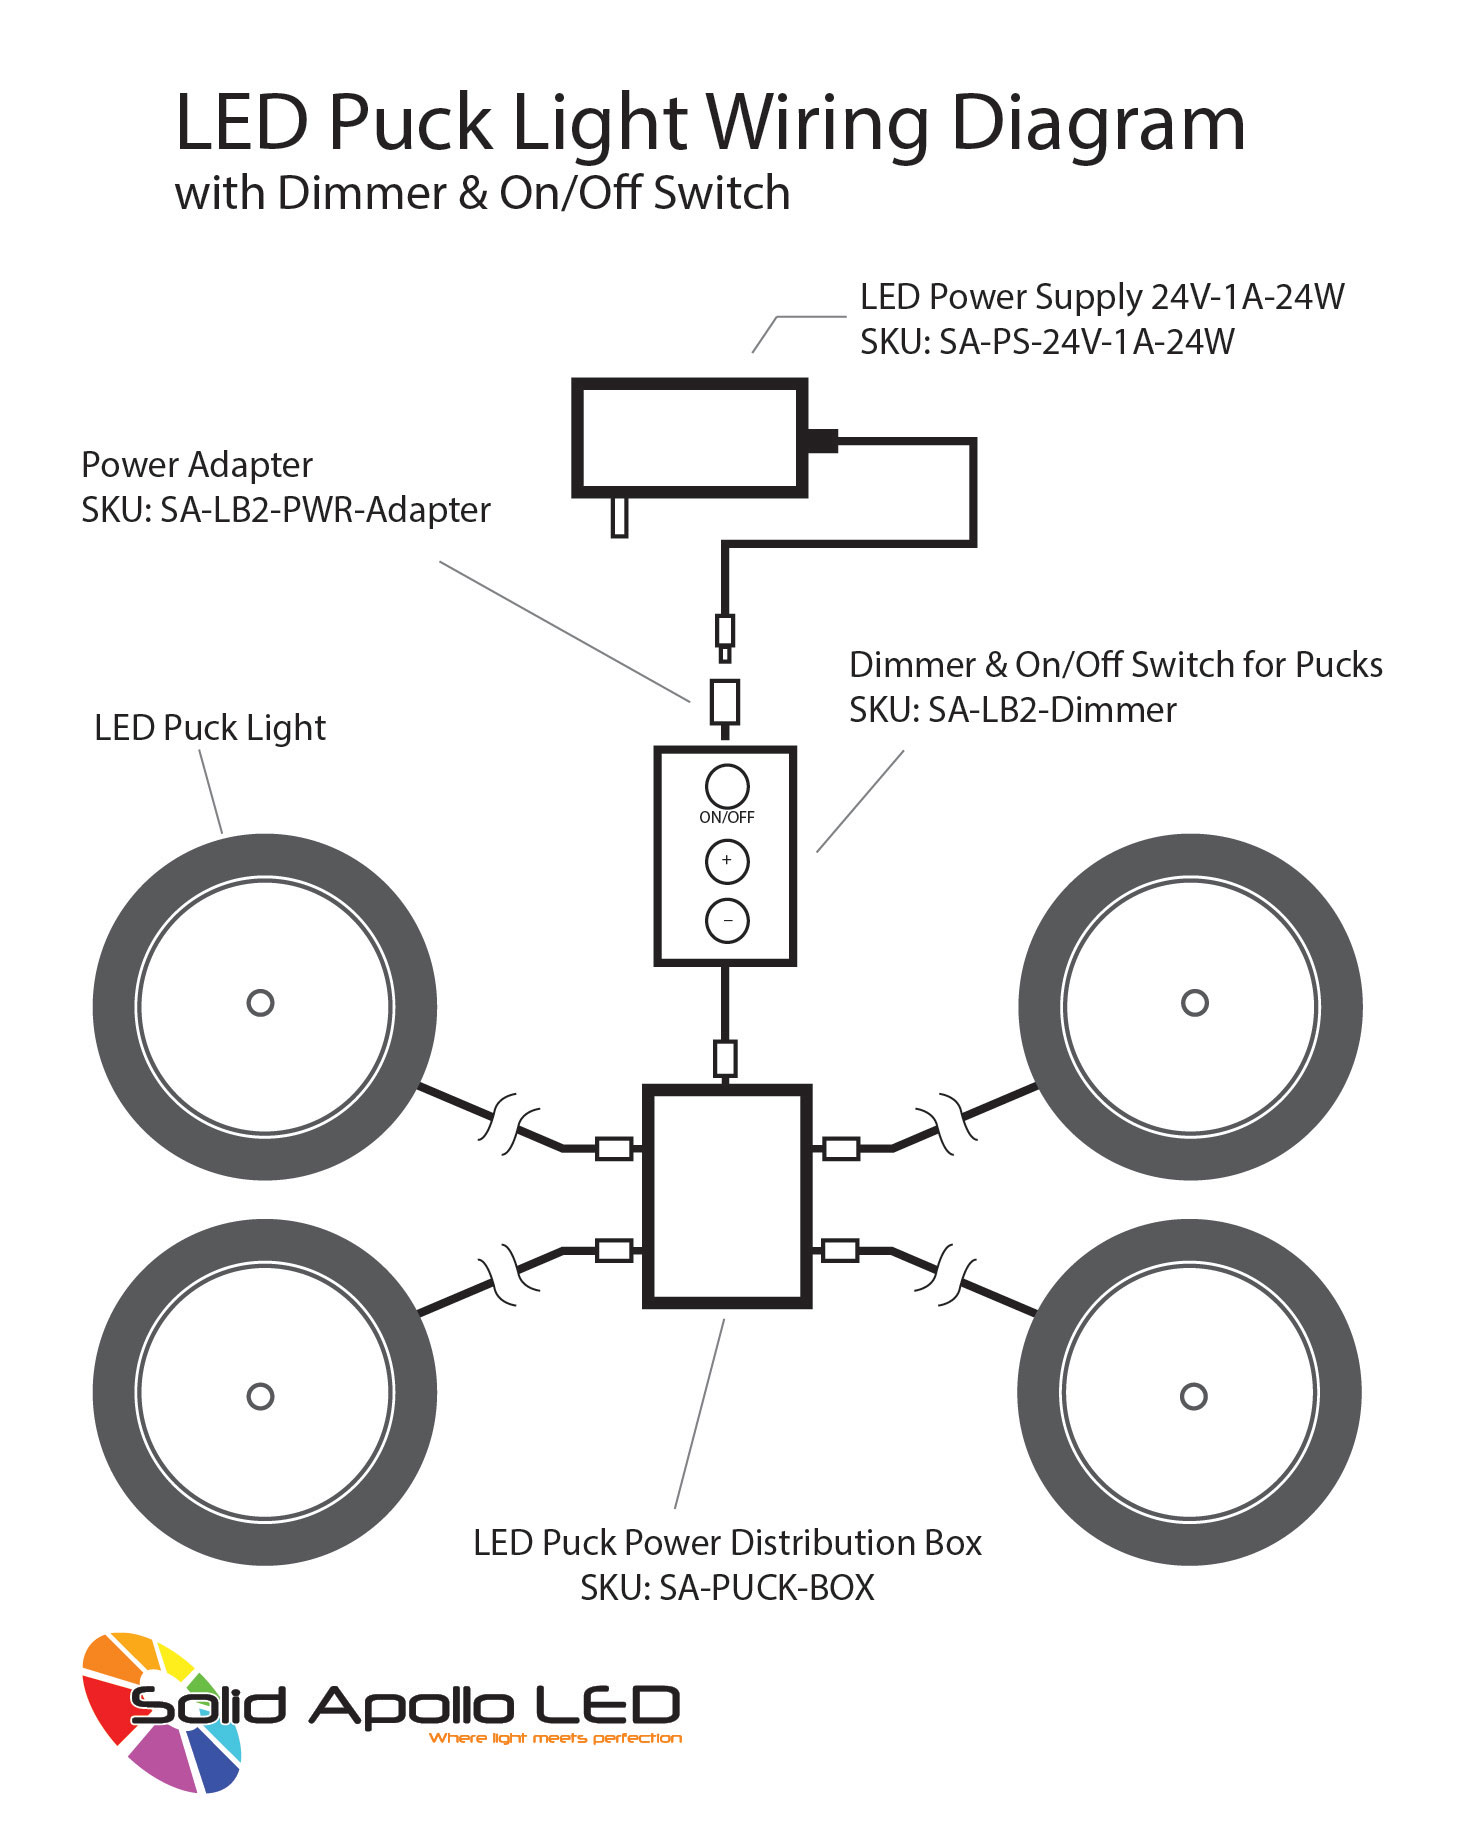 daylight white premium led puck light nickel body led light bar wiring diagram #10